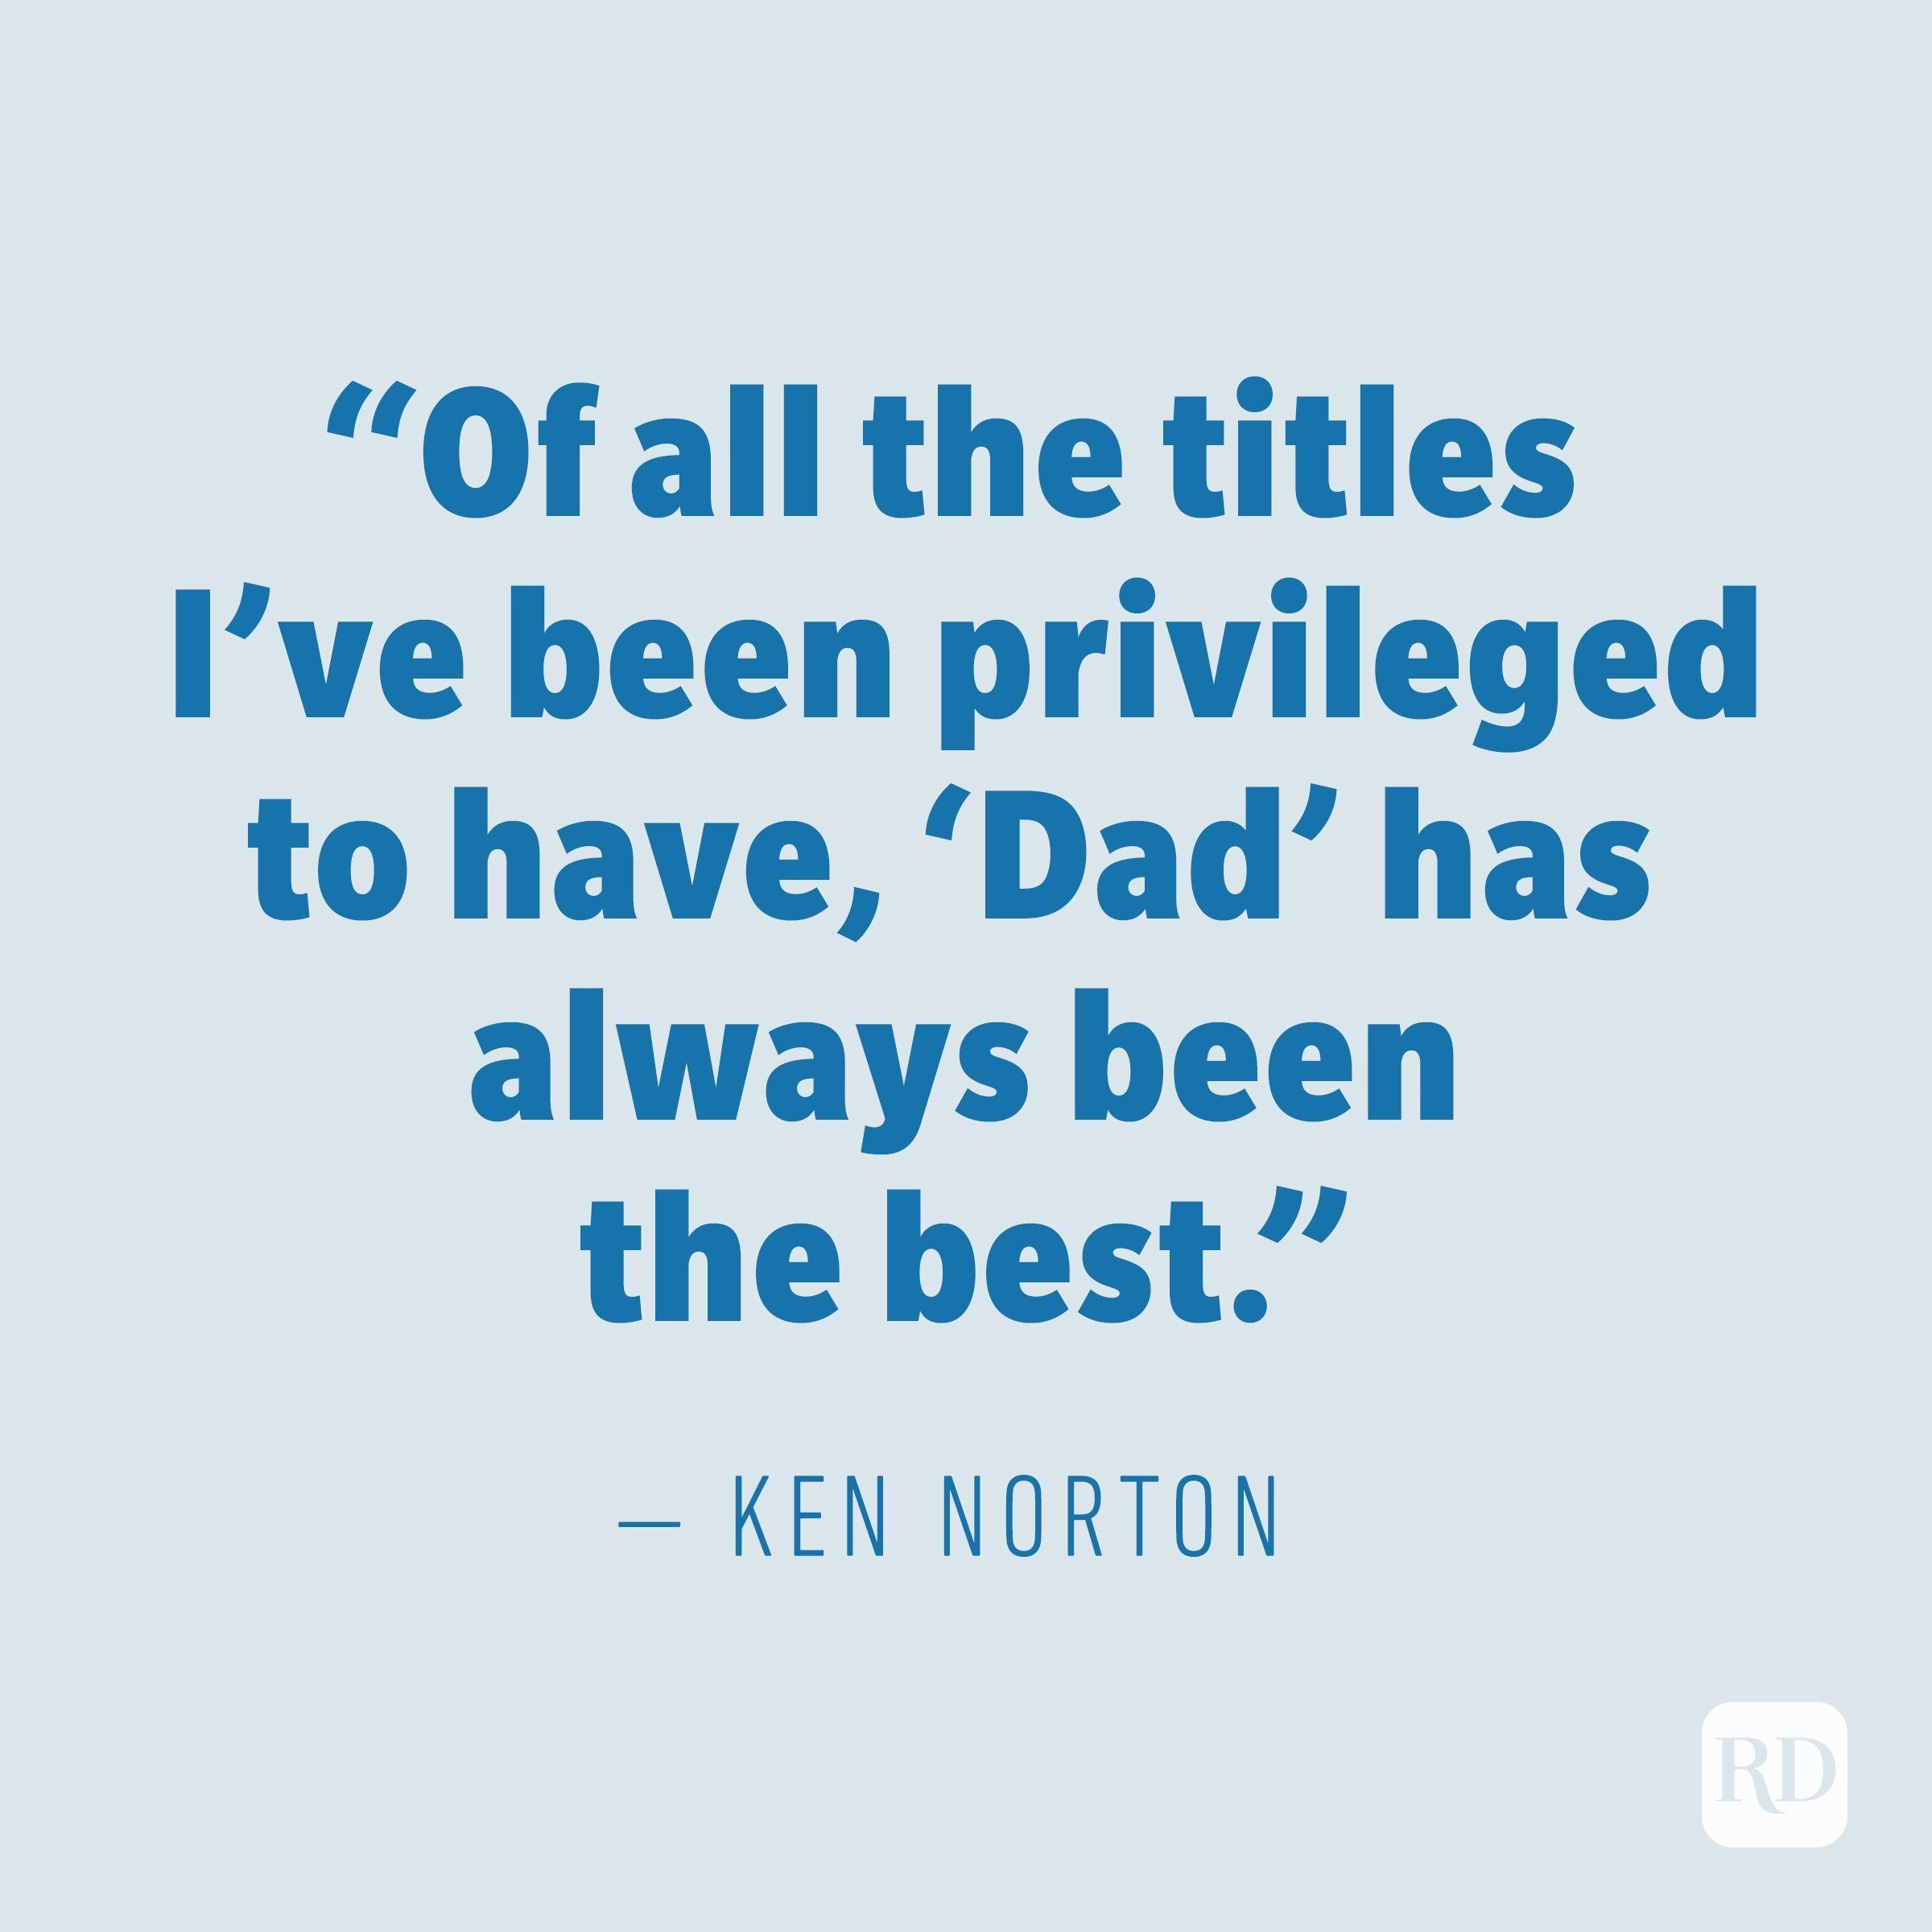 Ken Norton quote